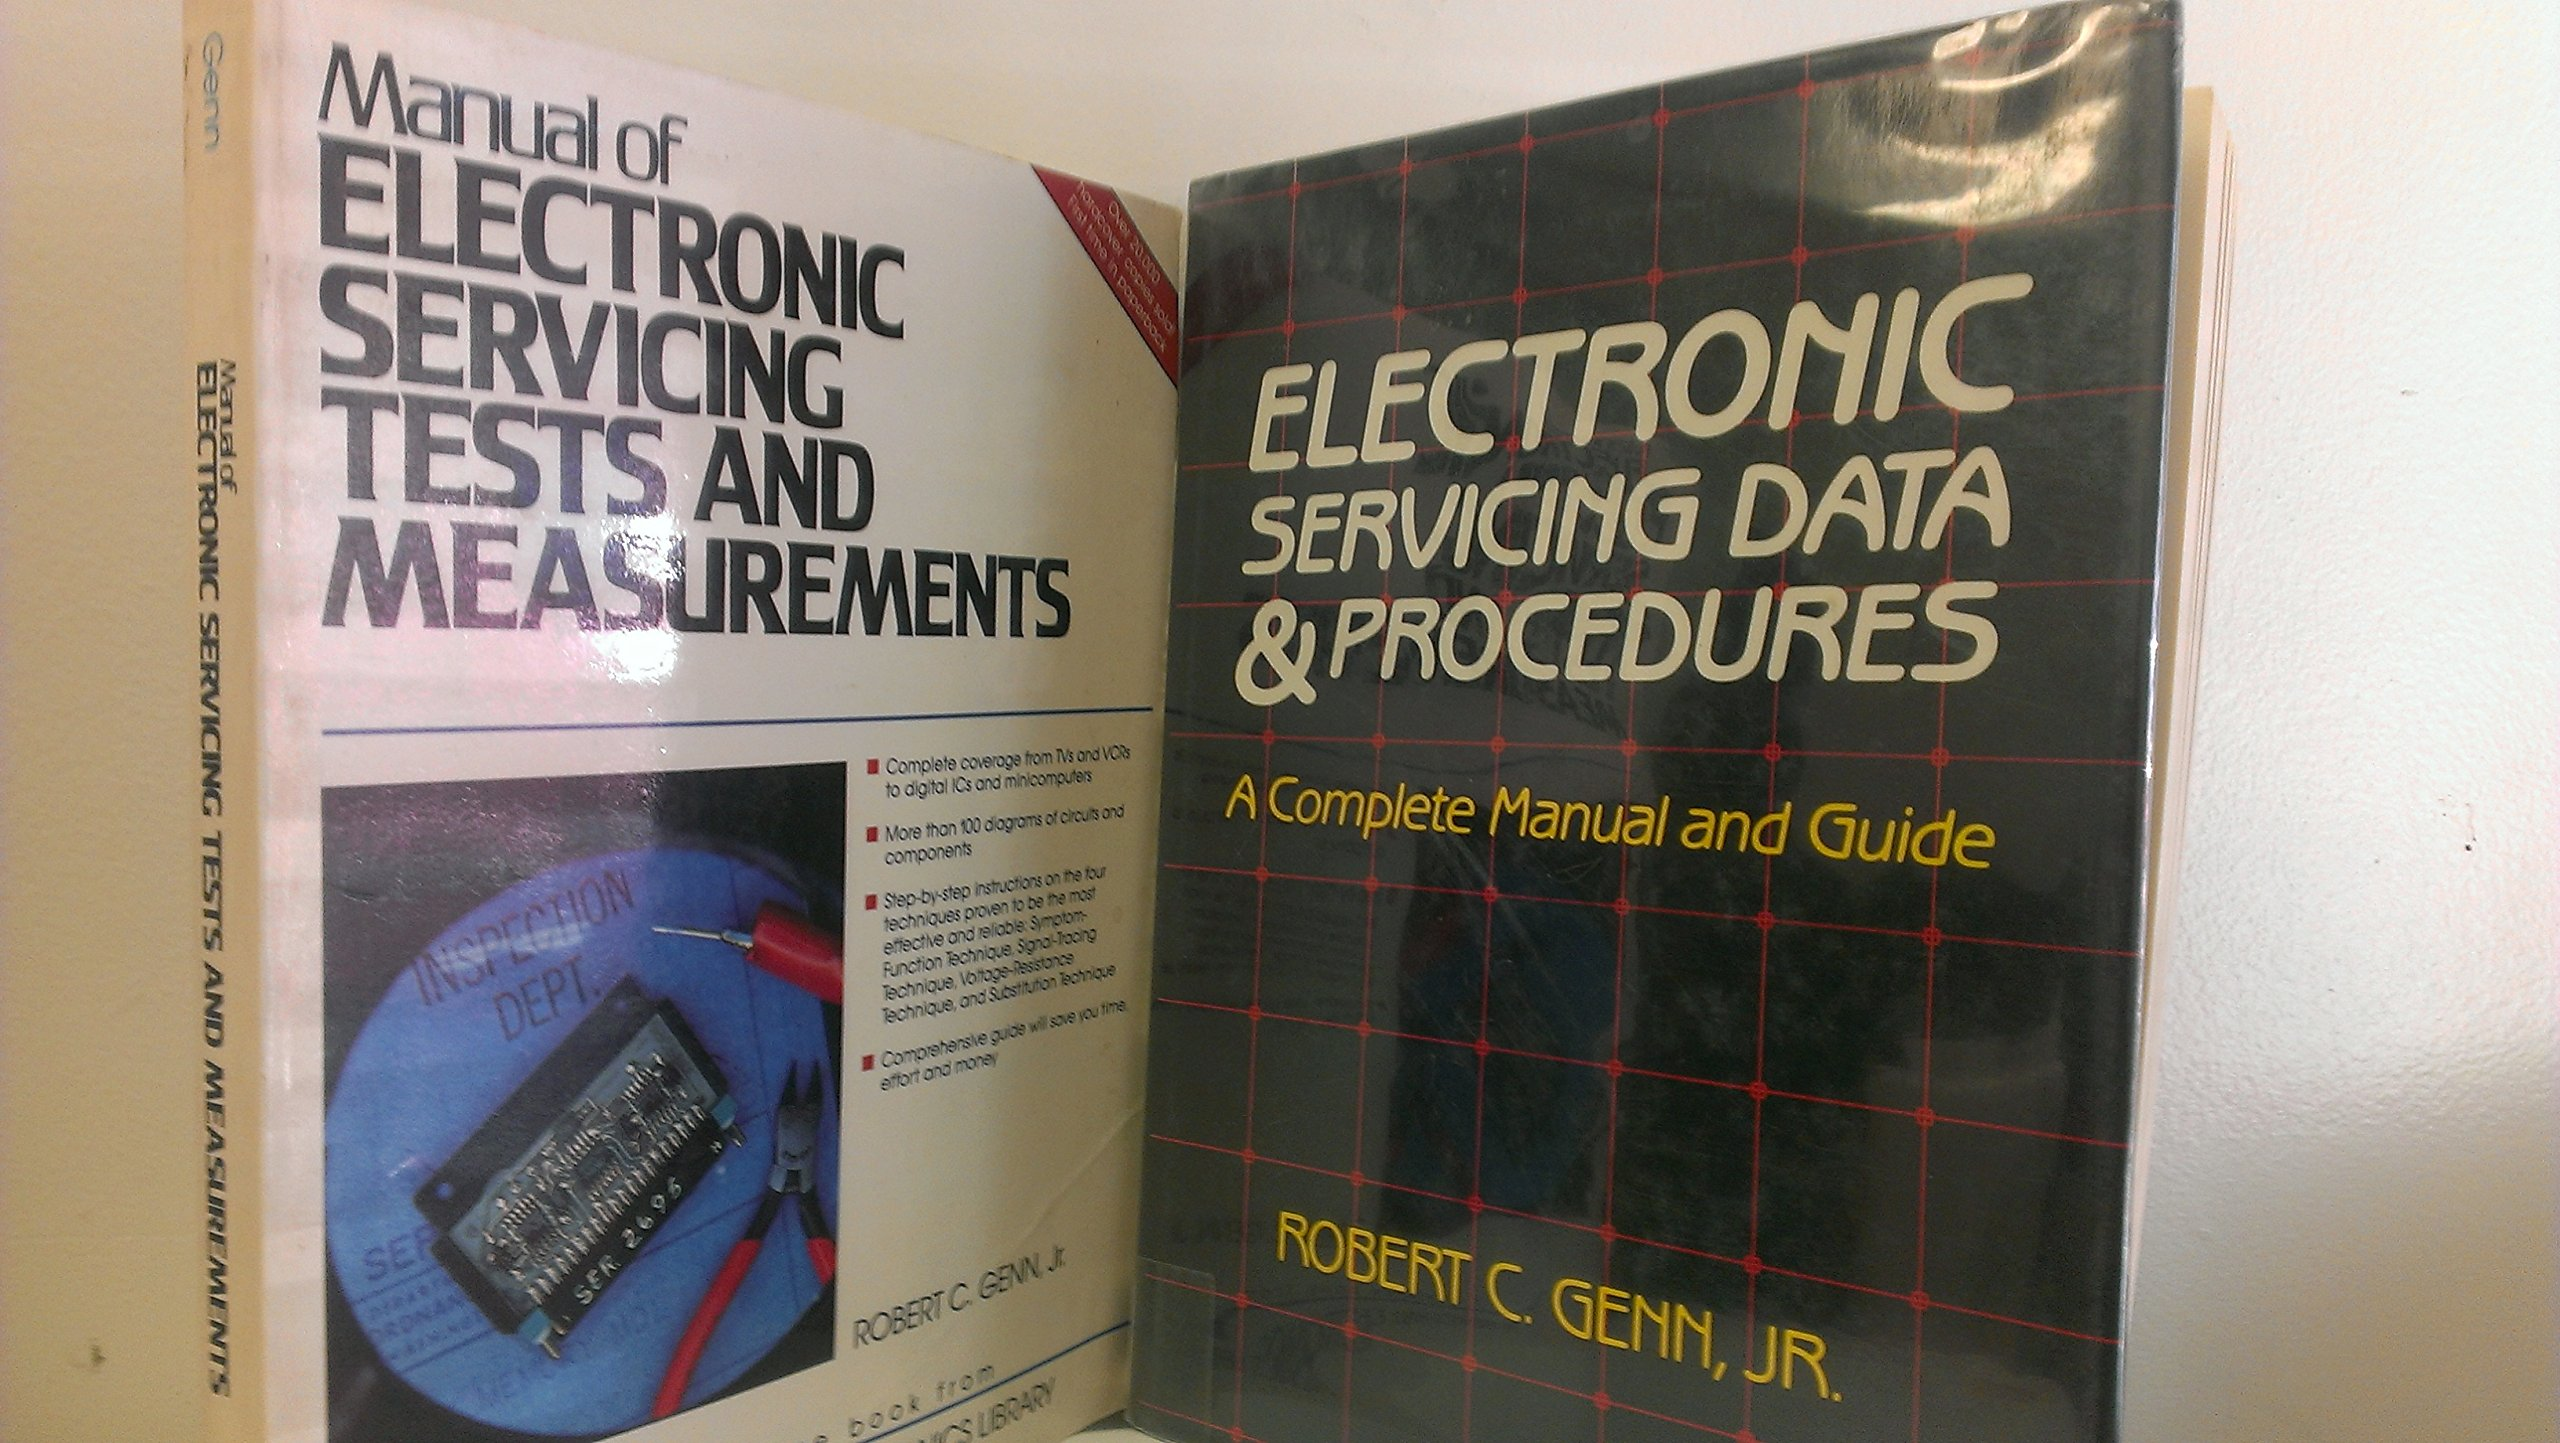 2 Volumes of Robert C. Genn Jr. Books: Electronic Servicing Data &  Procedures and Manual of Electronic Servicing Tests and measurements:  PrenticeHall ...